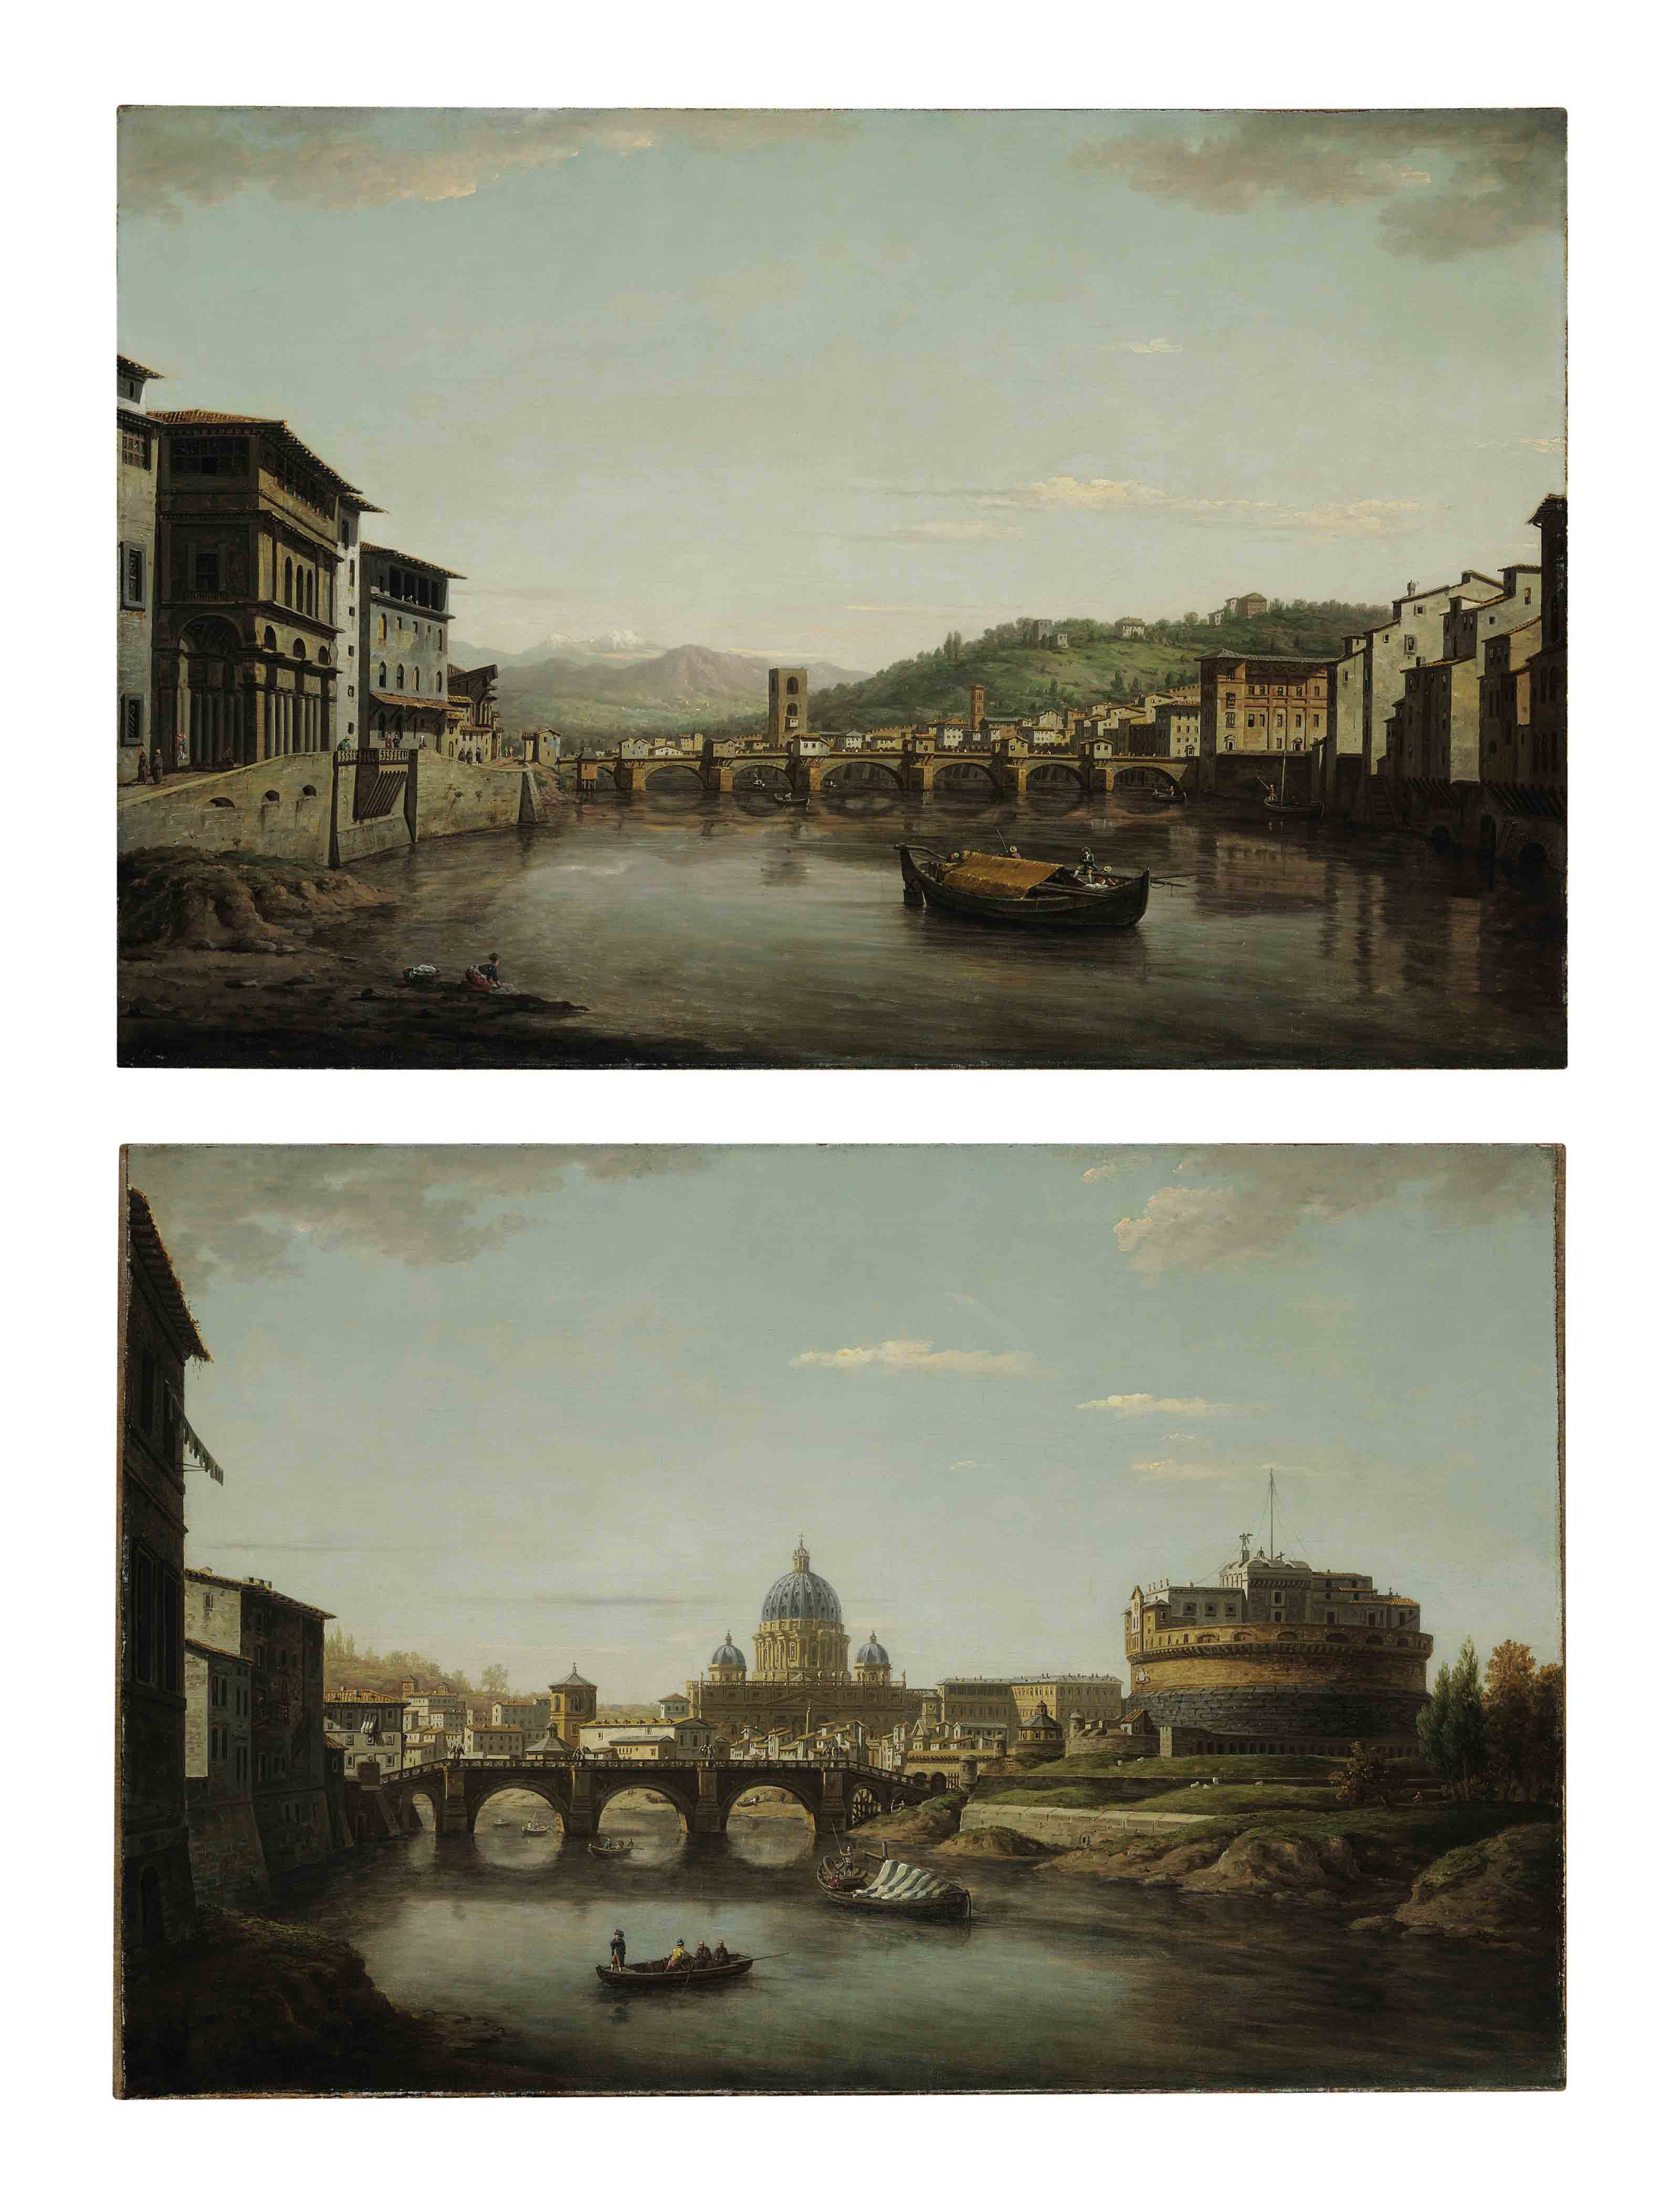 View of Florence from the Ponte Vecchio looking up the Arno toward the Ponte alle Grazie with the entrance to the Uffizi on the left; and View of Rome with Saint Peter's and the Castel Sant'Angelo seen from the Tiber